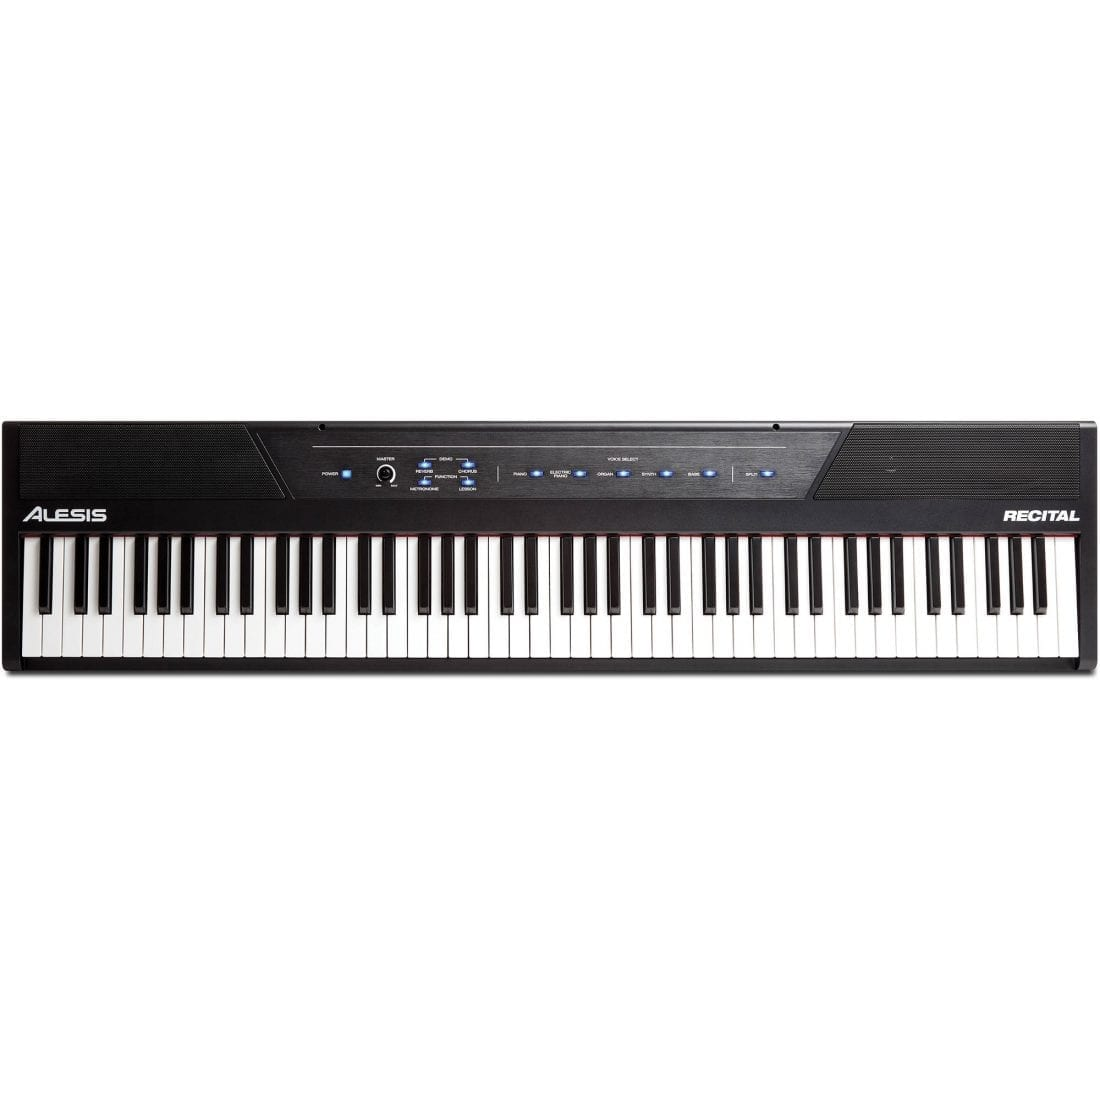 photo4less alesis recital 88 key beginner digital piano with full size semi weighted keys and. Black Bedroom Furniture Sets. Home Design Ideas